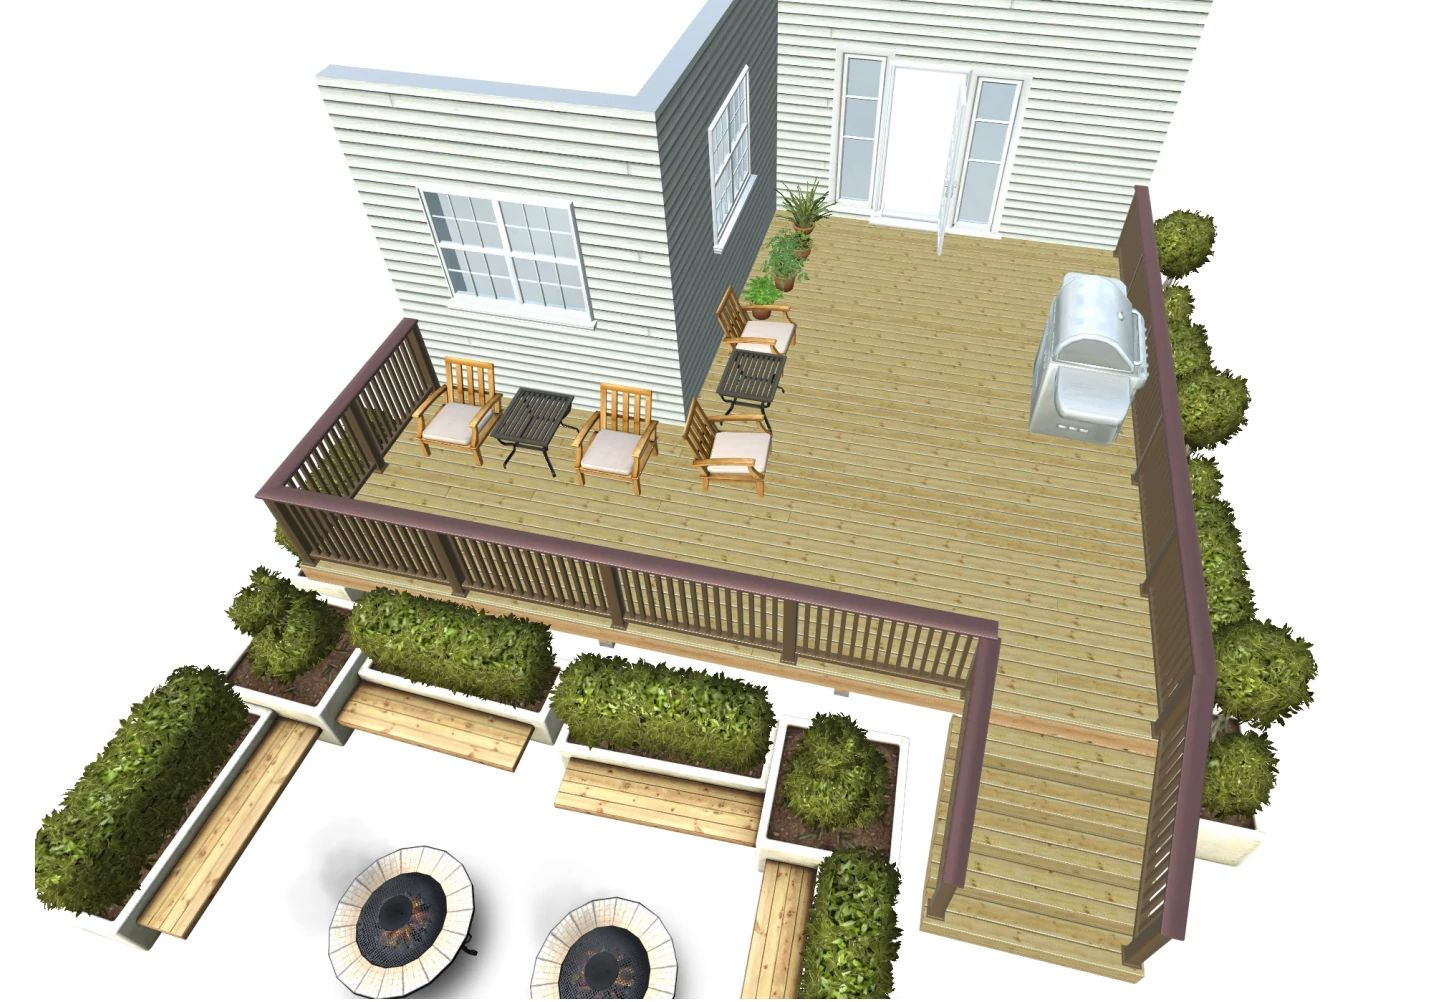 Flores deck design dream deck